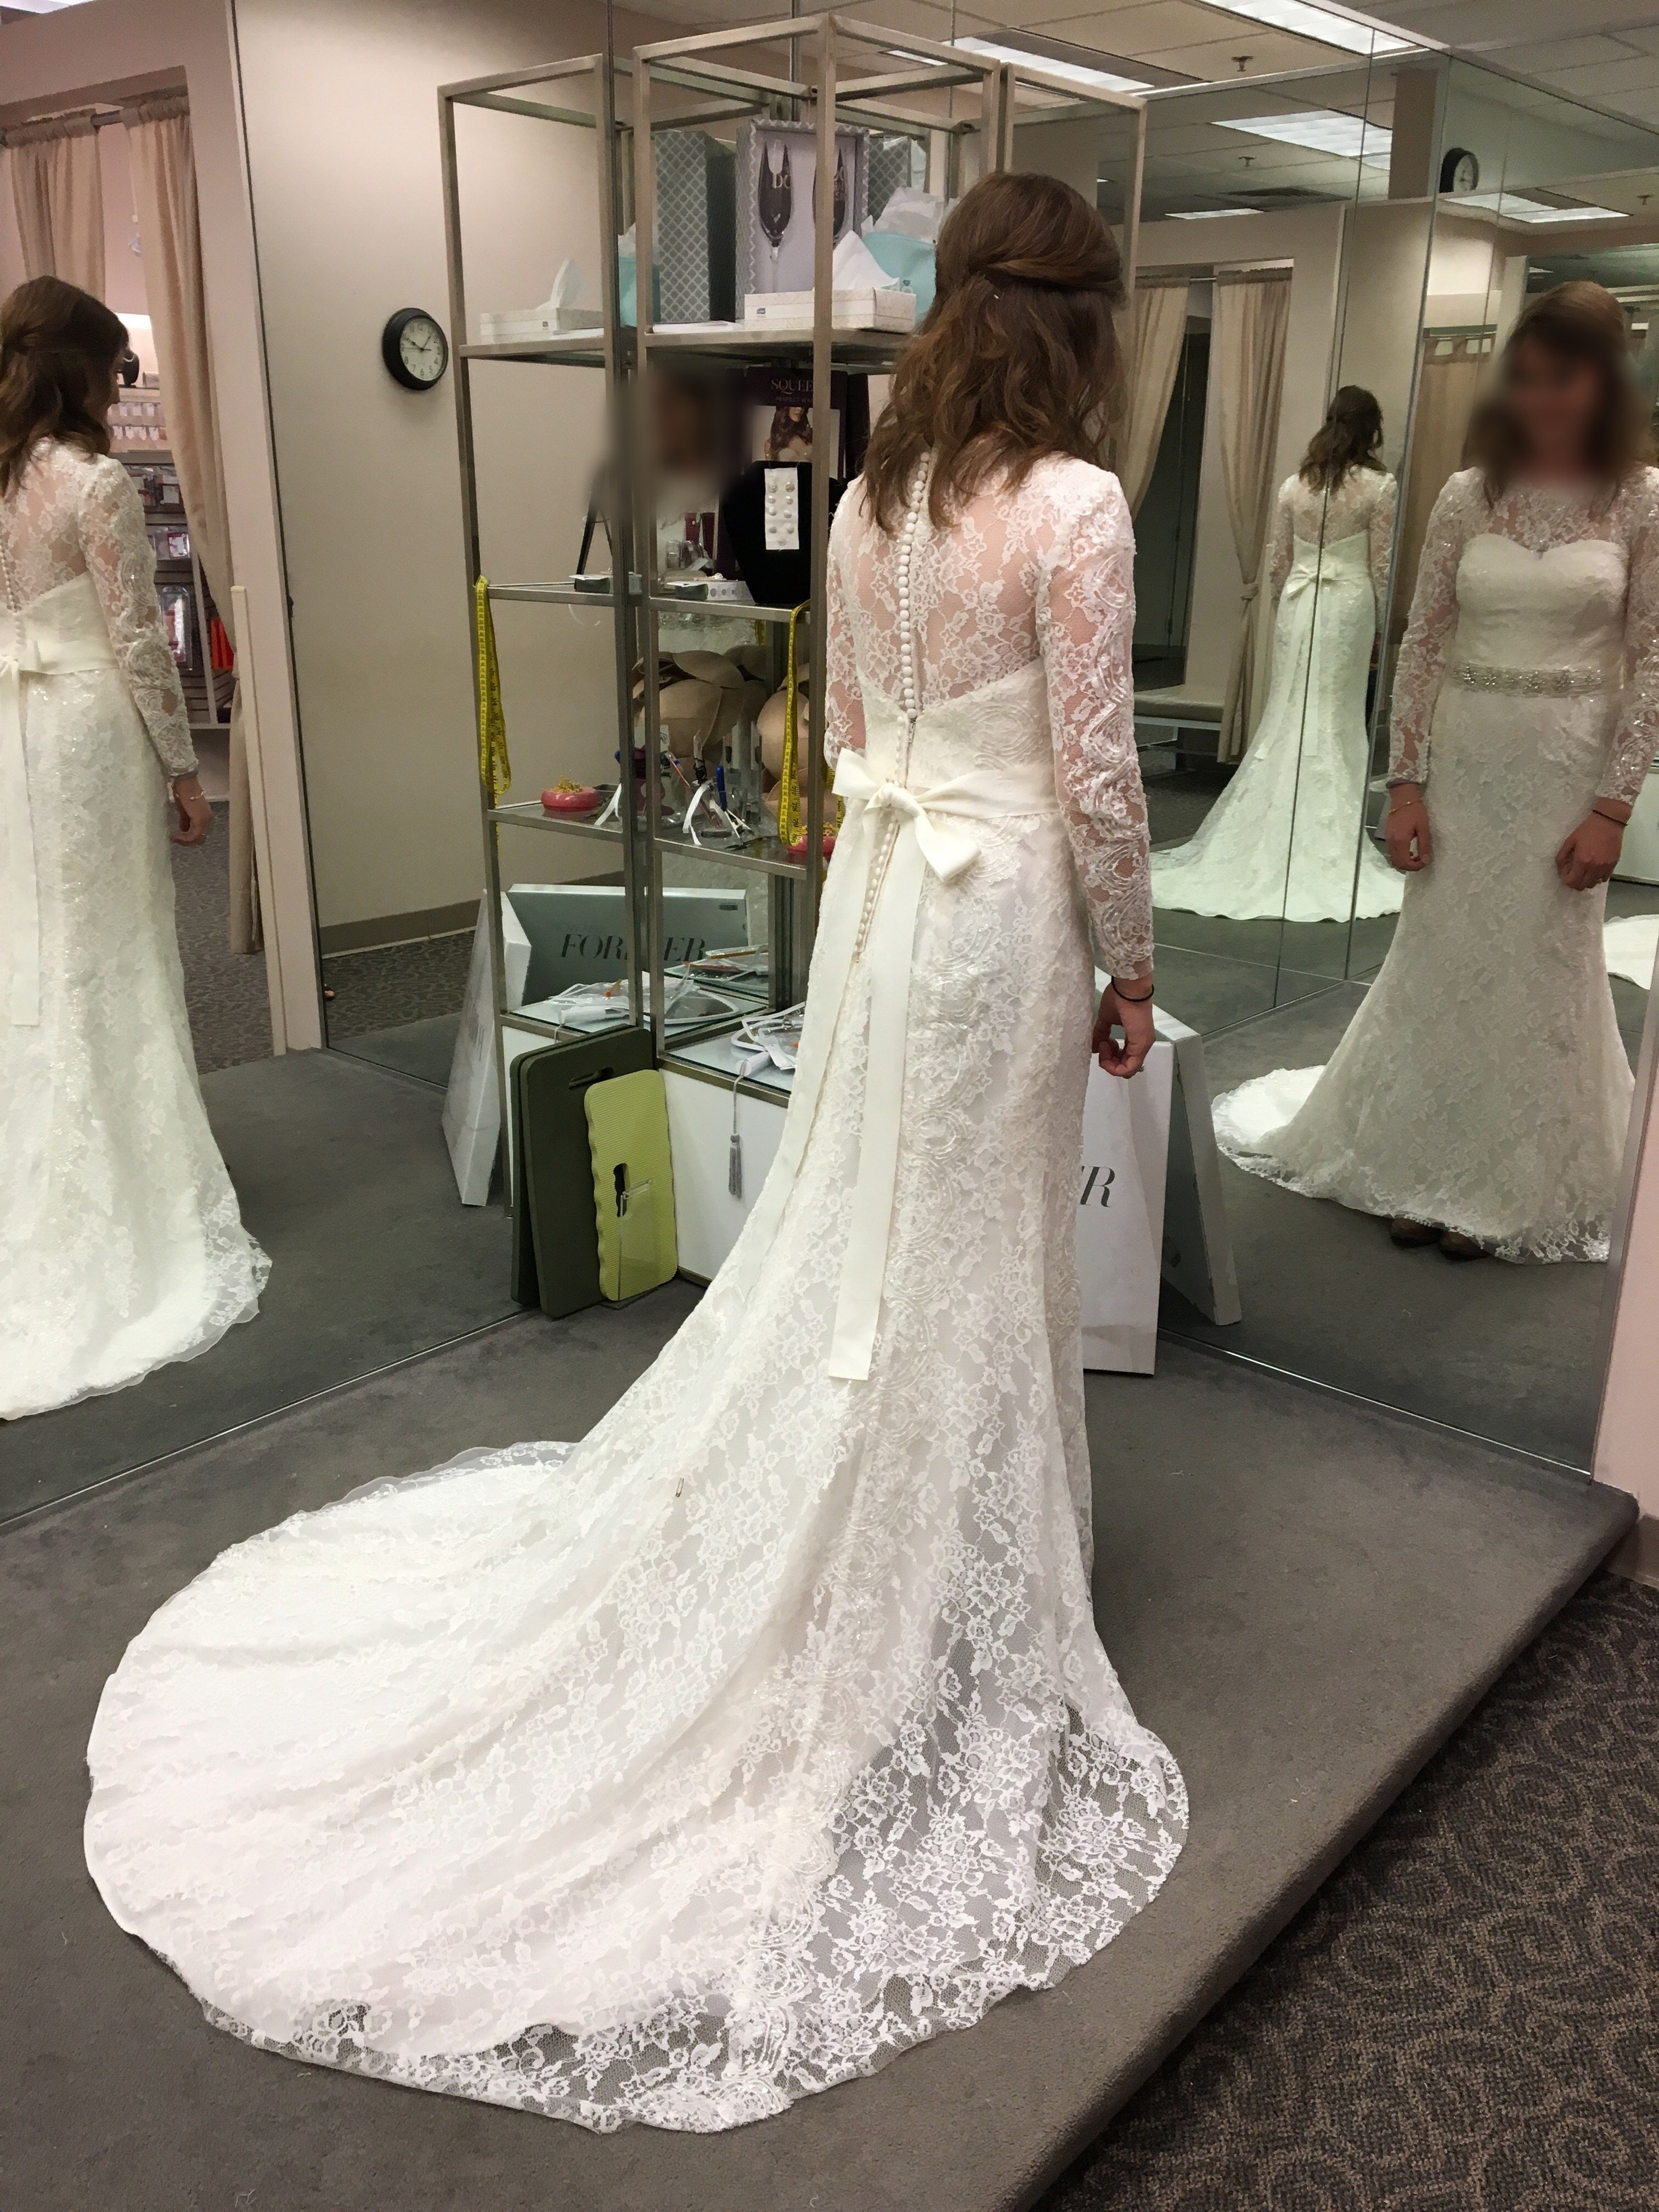 Should I remove the sleeves from my wedding gown? — The Knot